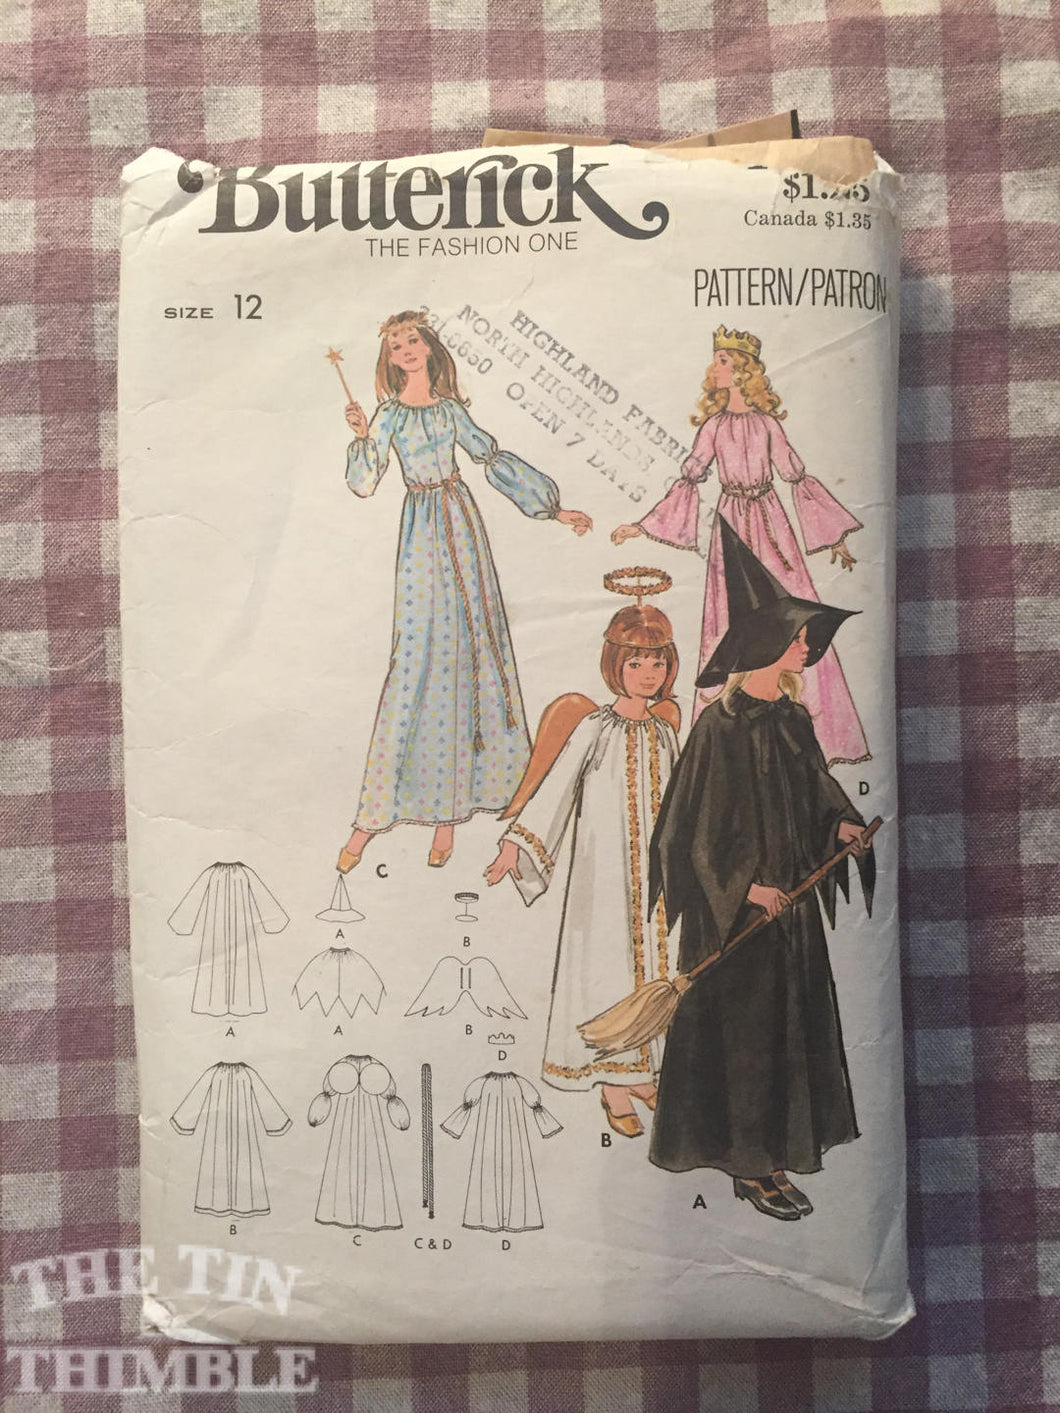 Vintage Costume Pattern / Witch Costume / Princess Costume / Angel Costume / Butterick 4938 / Size 12 Bust 30 - Halloween Costume